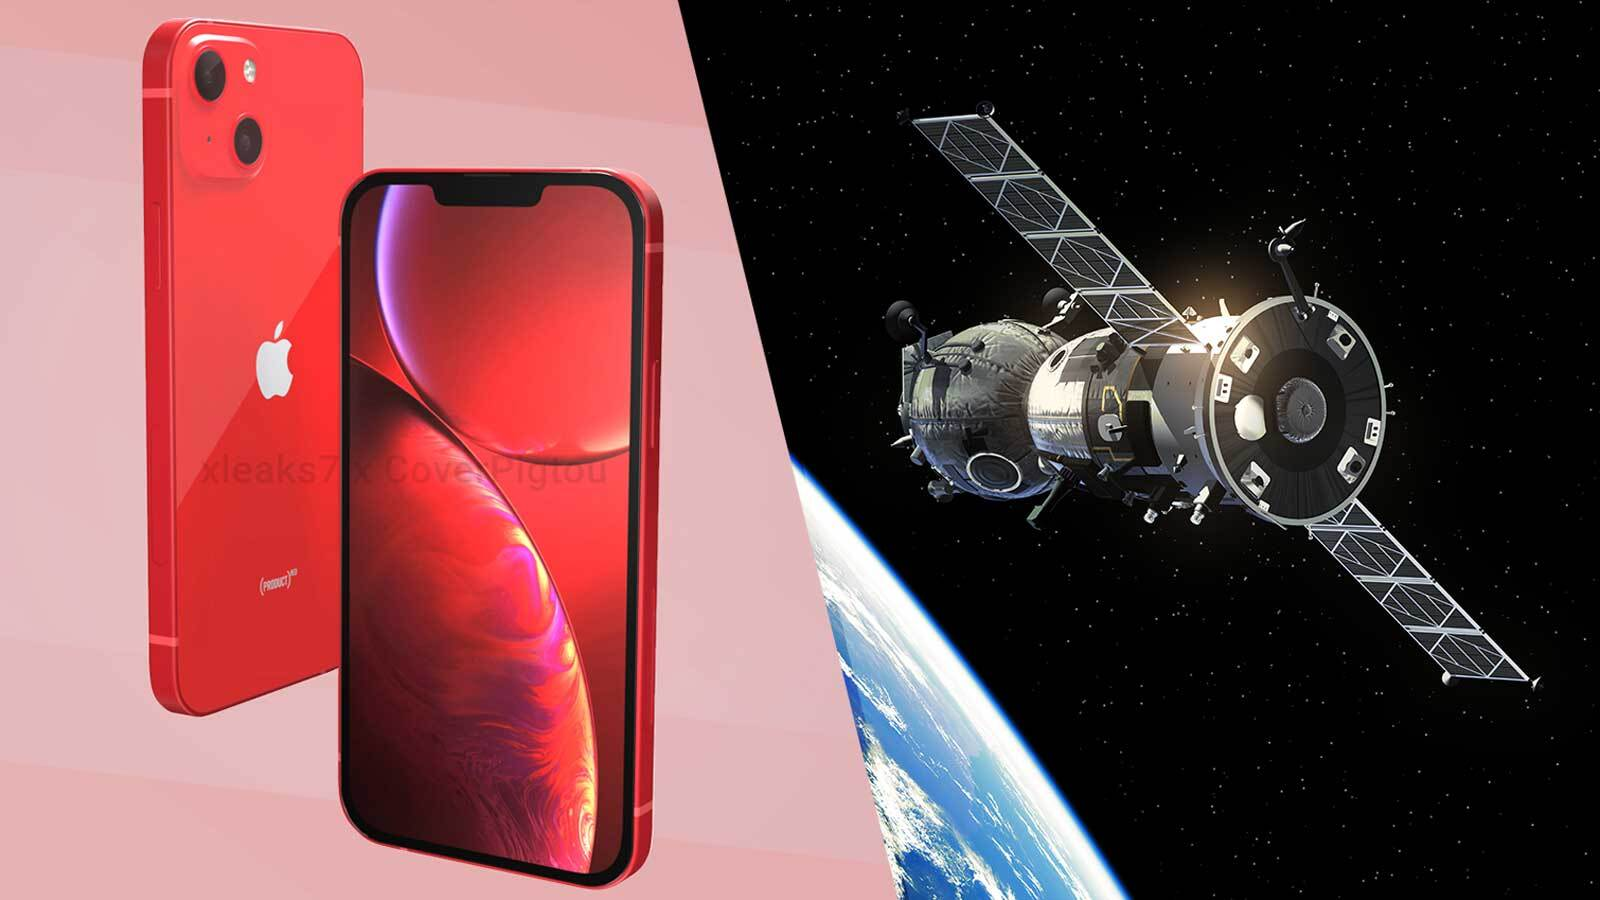 iPhone 13 satellite communication — everything we know so far | Tom's Guide